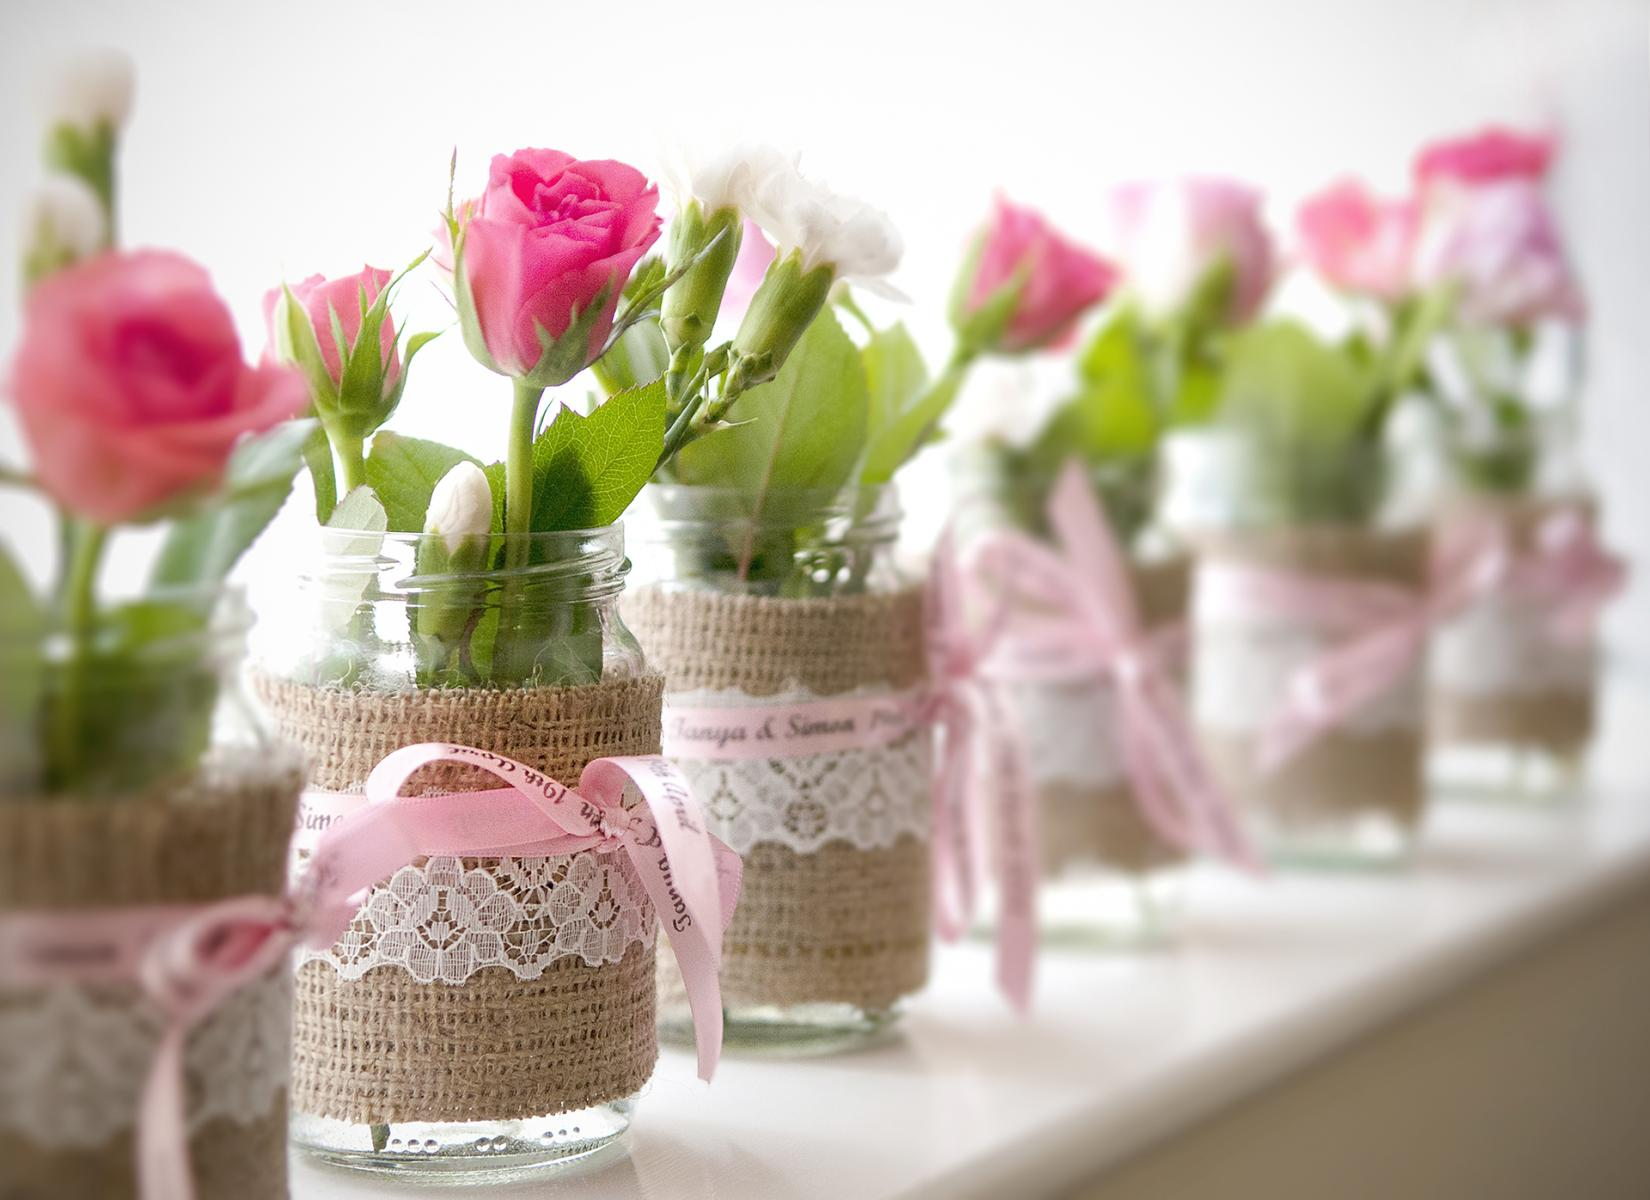 cardiff-weddings-rose-glass-jam-jar-wedding-favours-wedding-photographers-south-wales